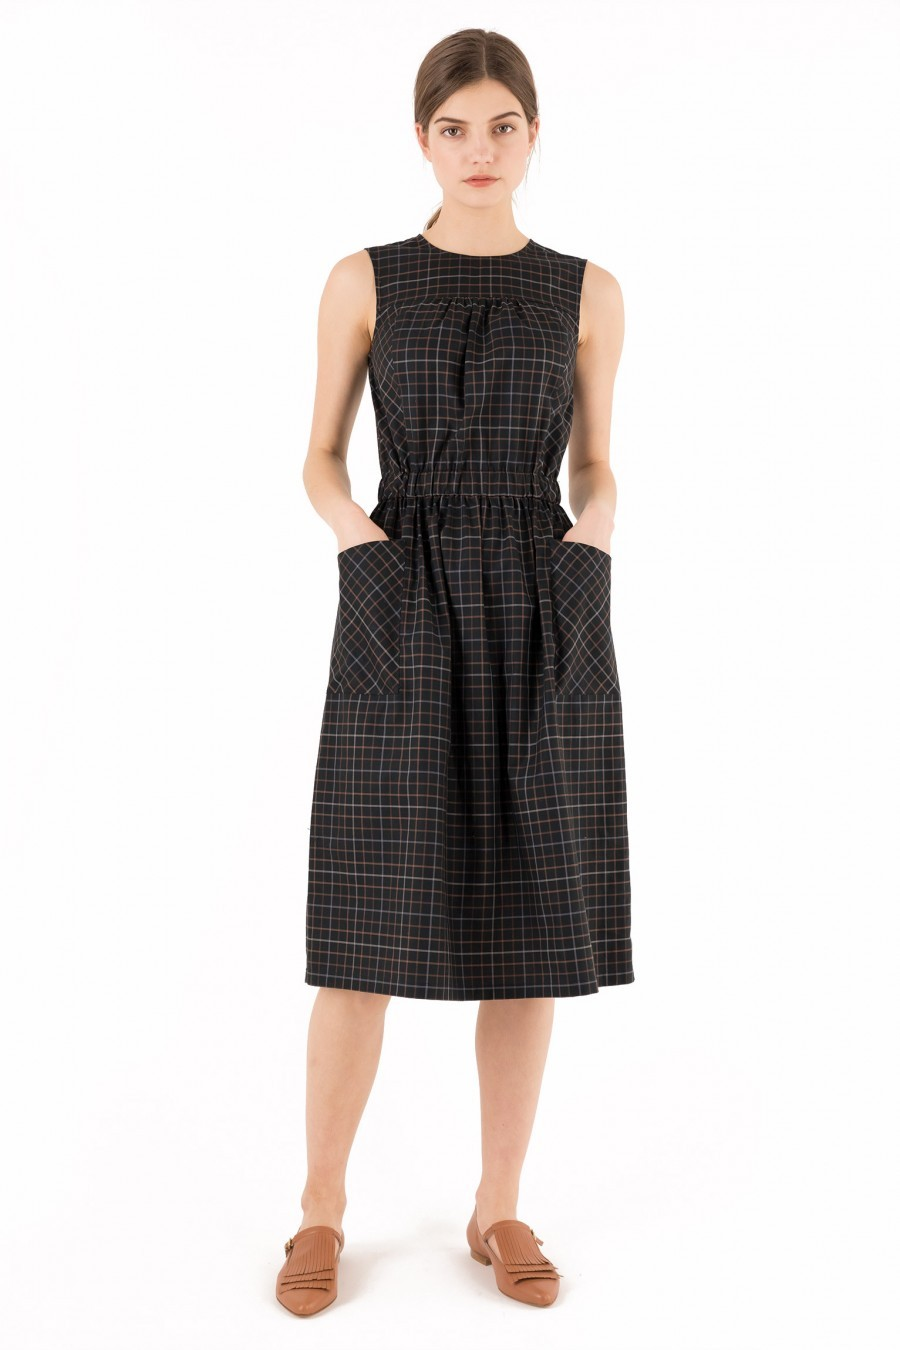 Cotton Dress tartan Spring Lazzari